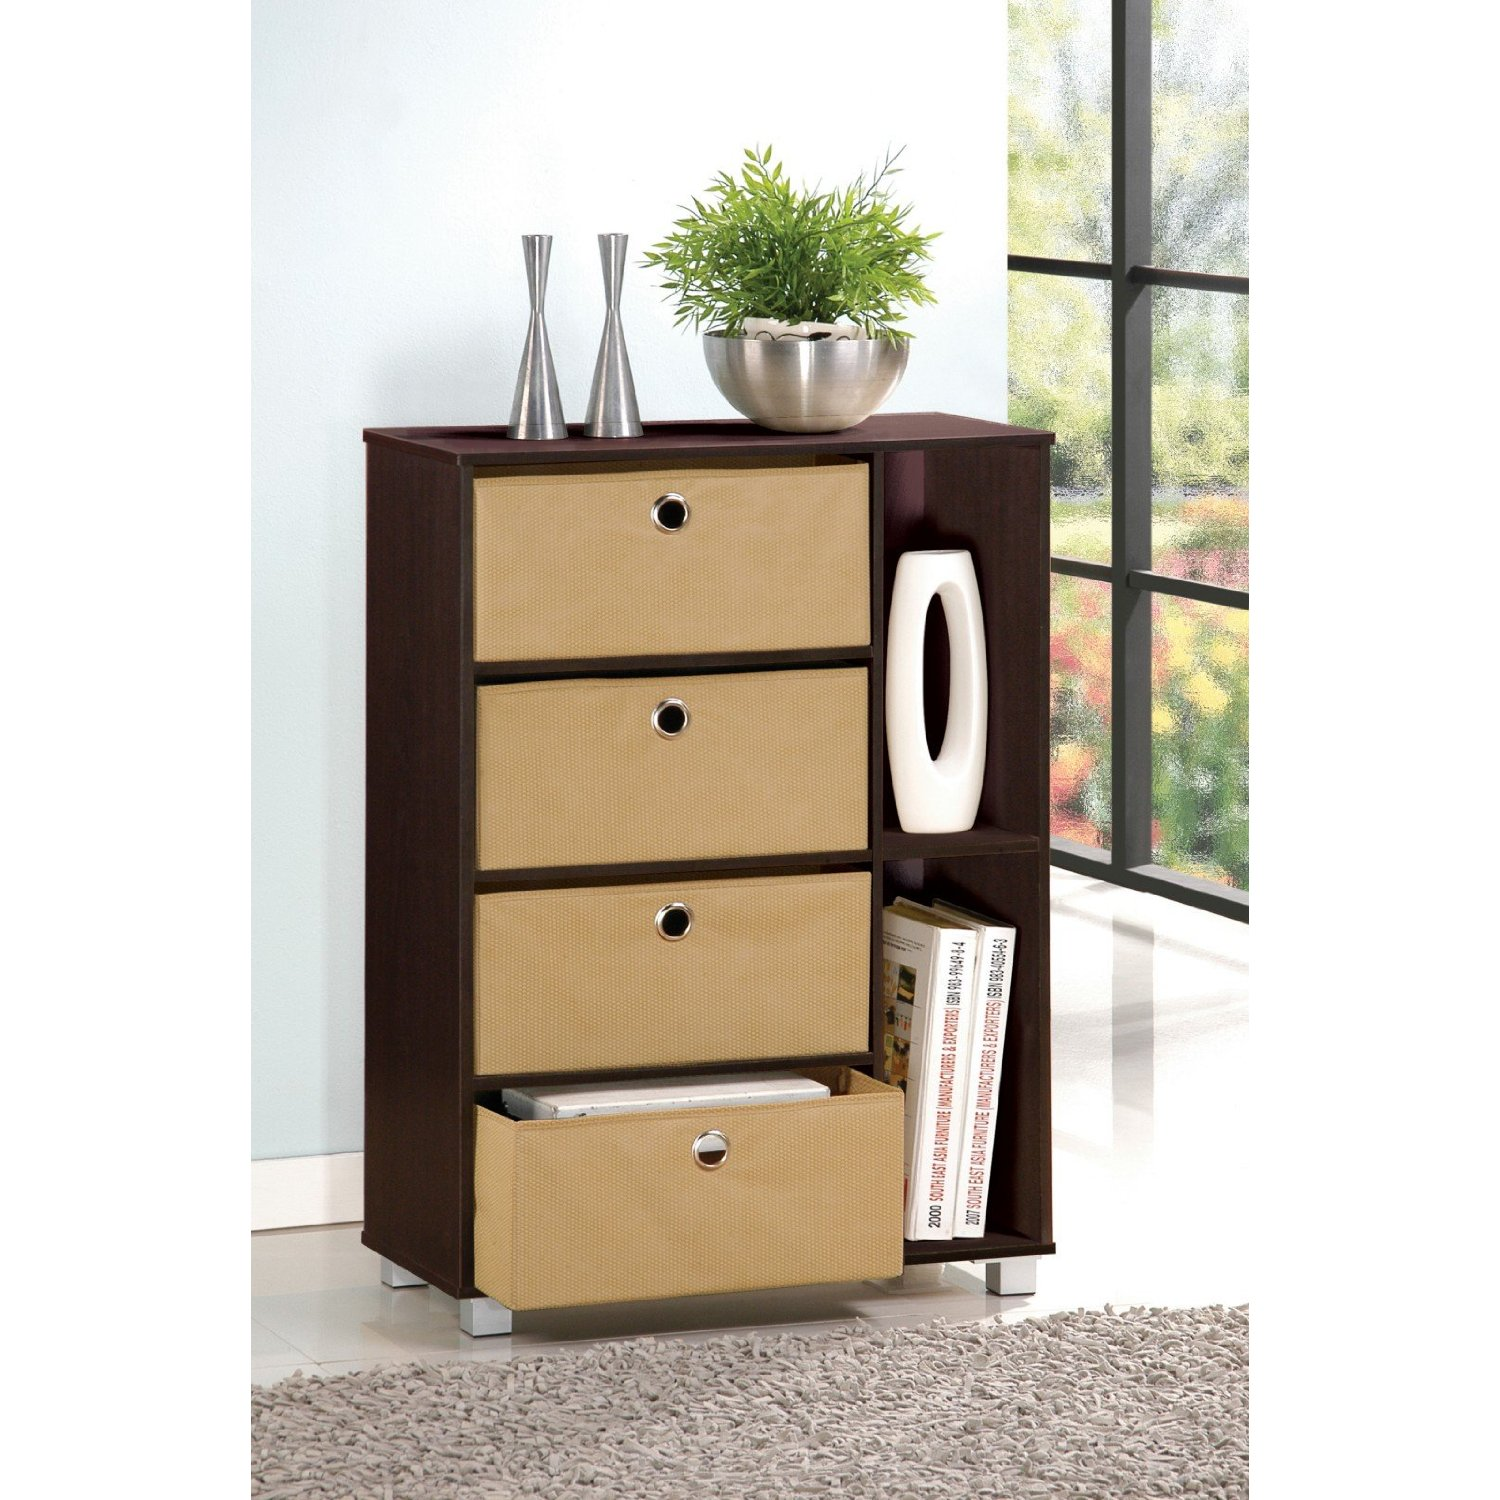 Furinno 11159 Multipurpose Storage Cabinet w/4 Bin-Type Drawers